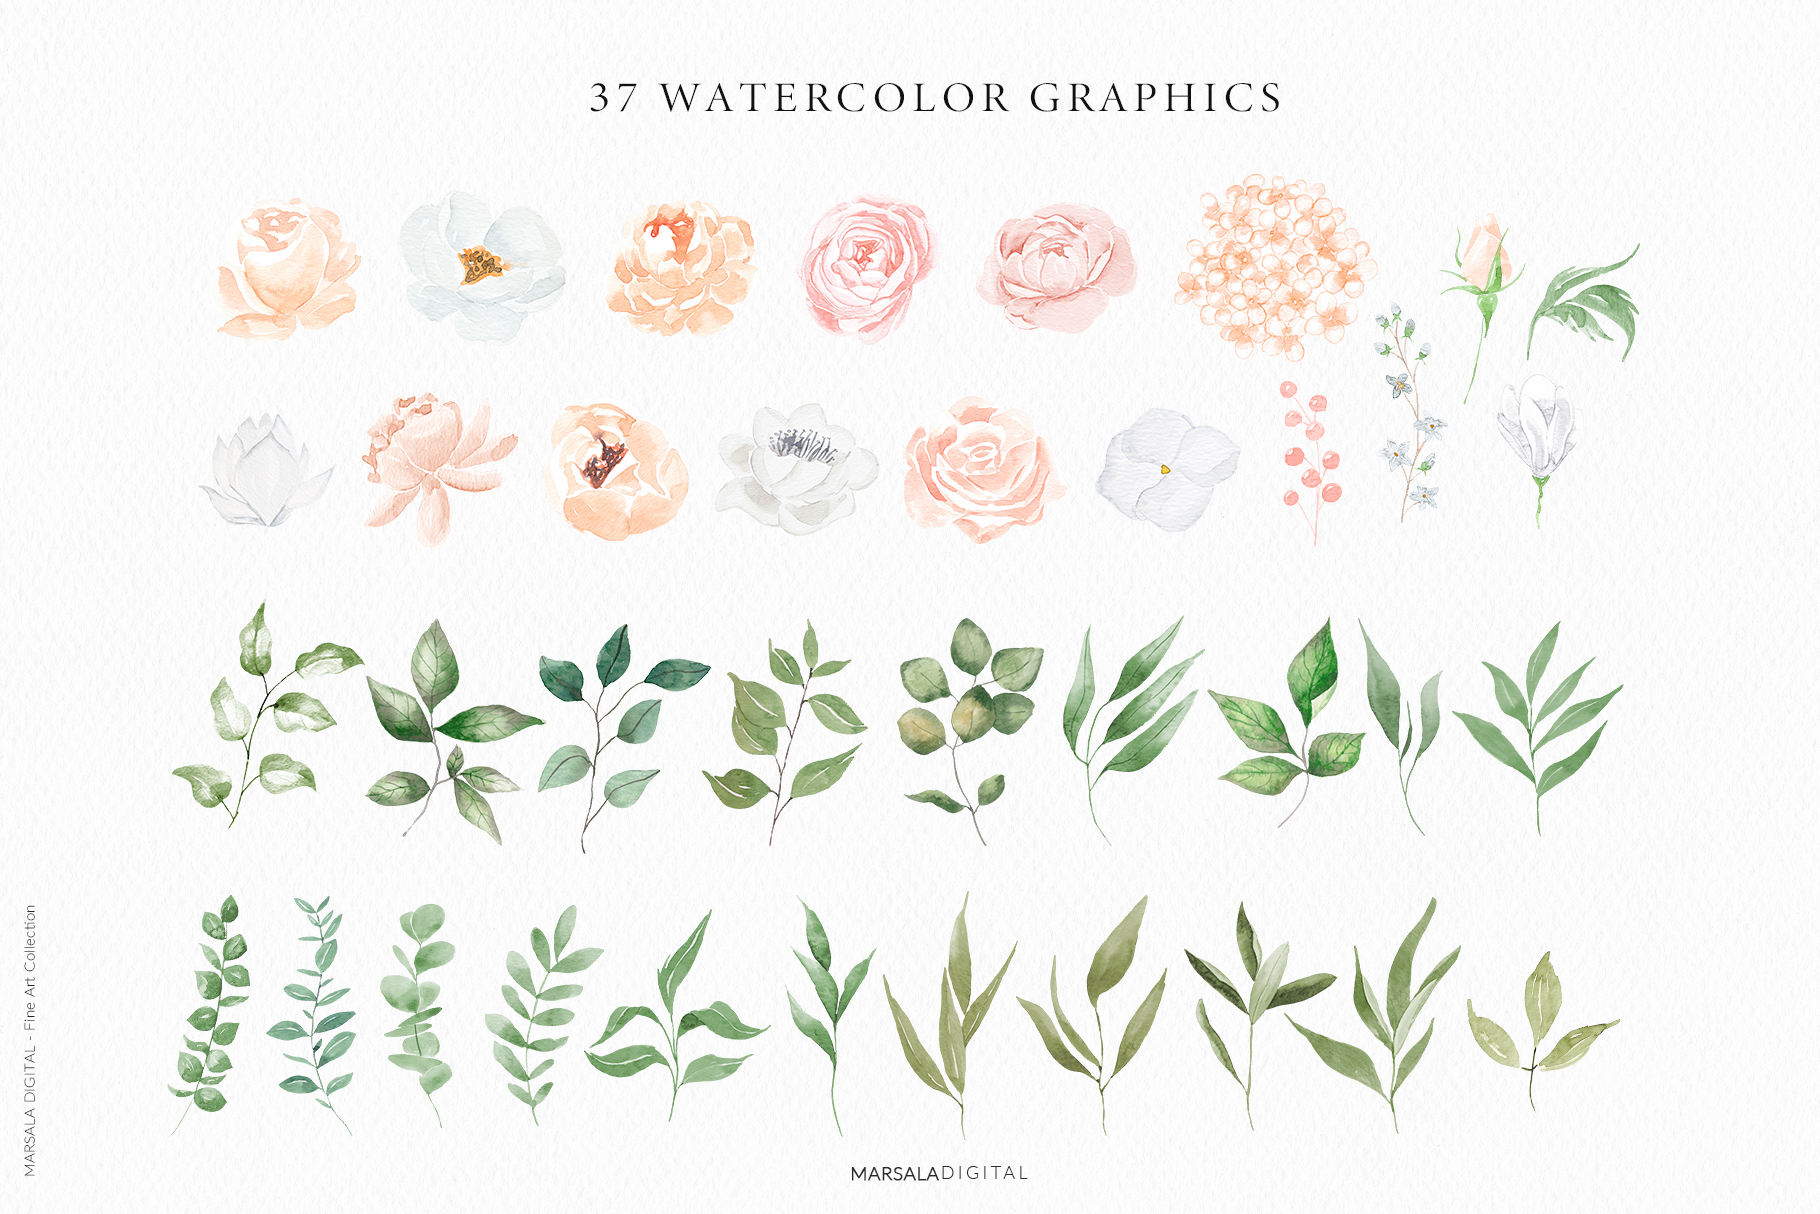 Watercolor Flowers Watercolor Florals Peach & White example image 25